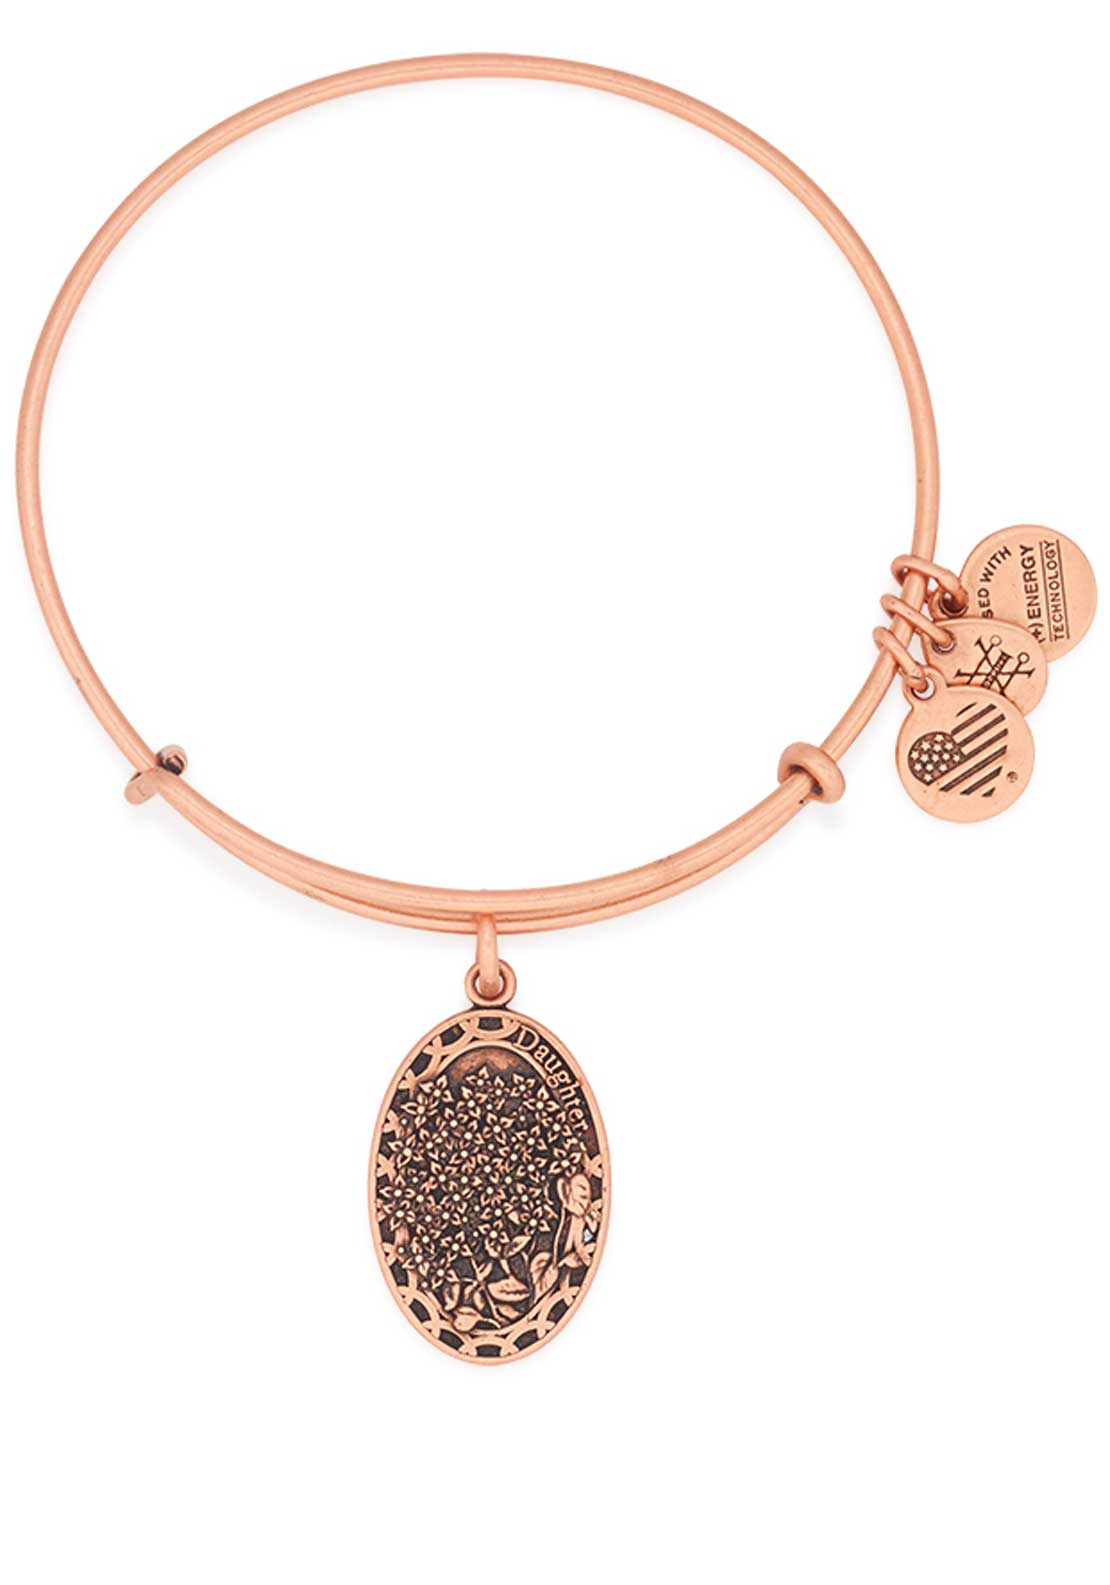 Alex and Ani Because I Love You Daughter Lilac Bracelet, Rose Gold